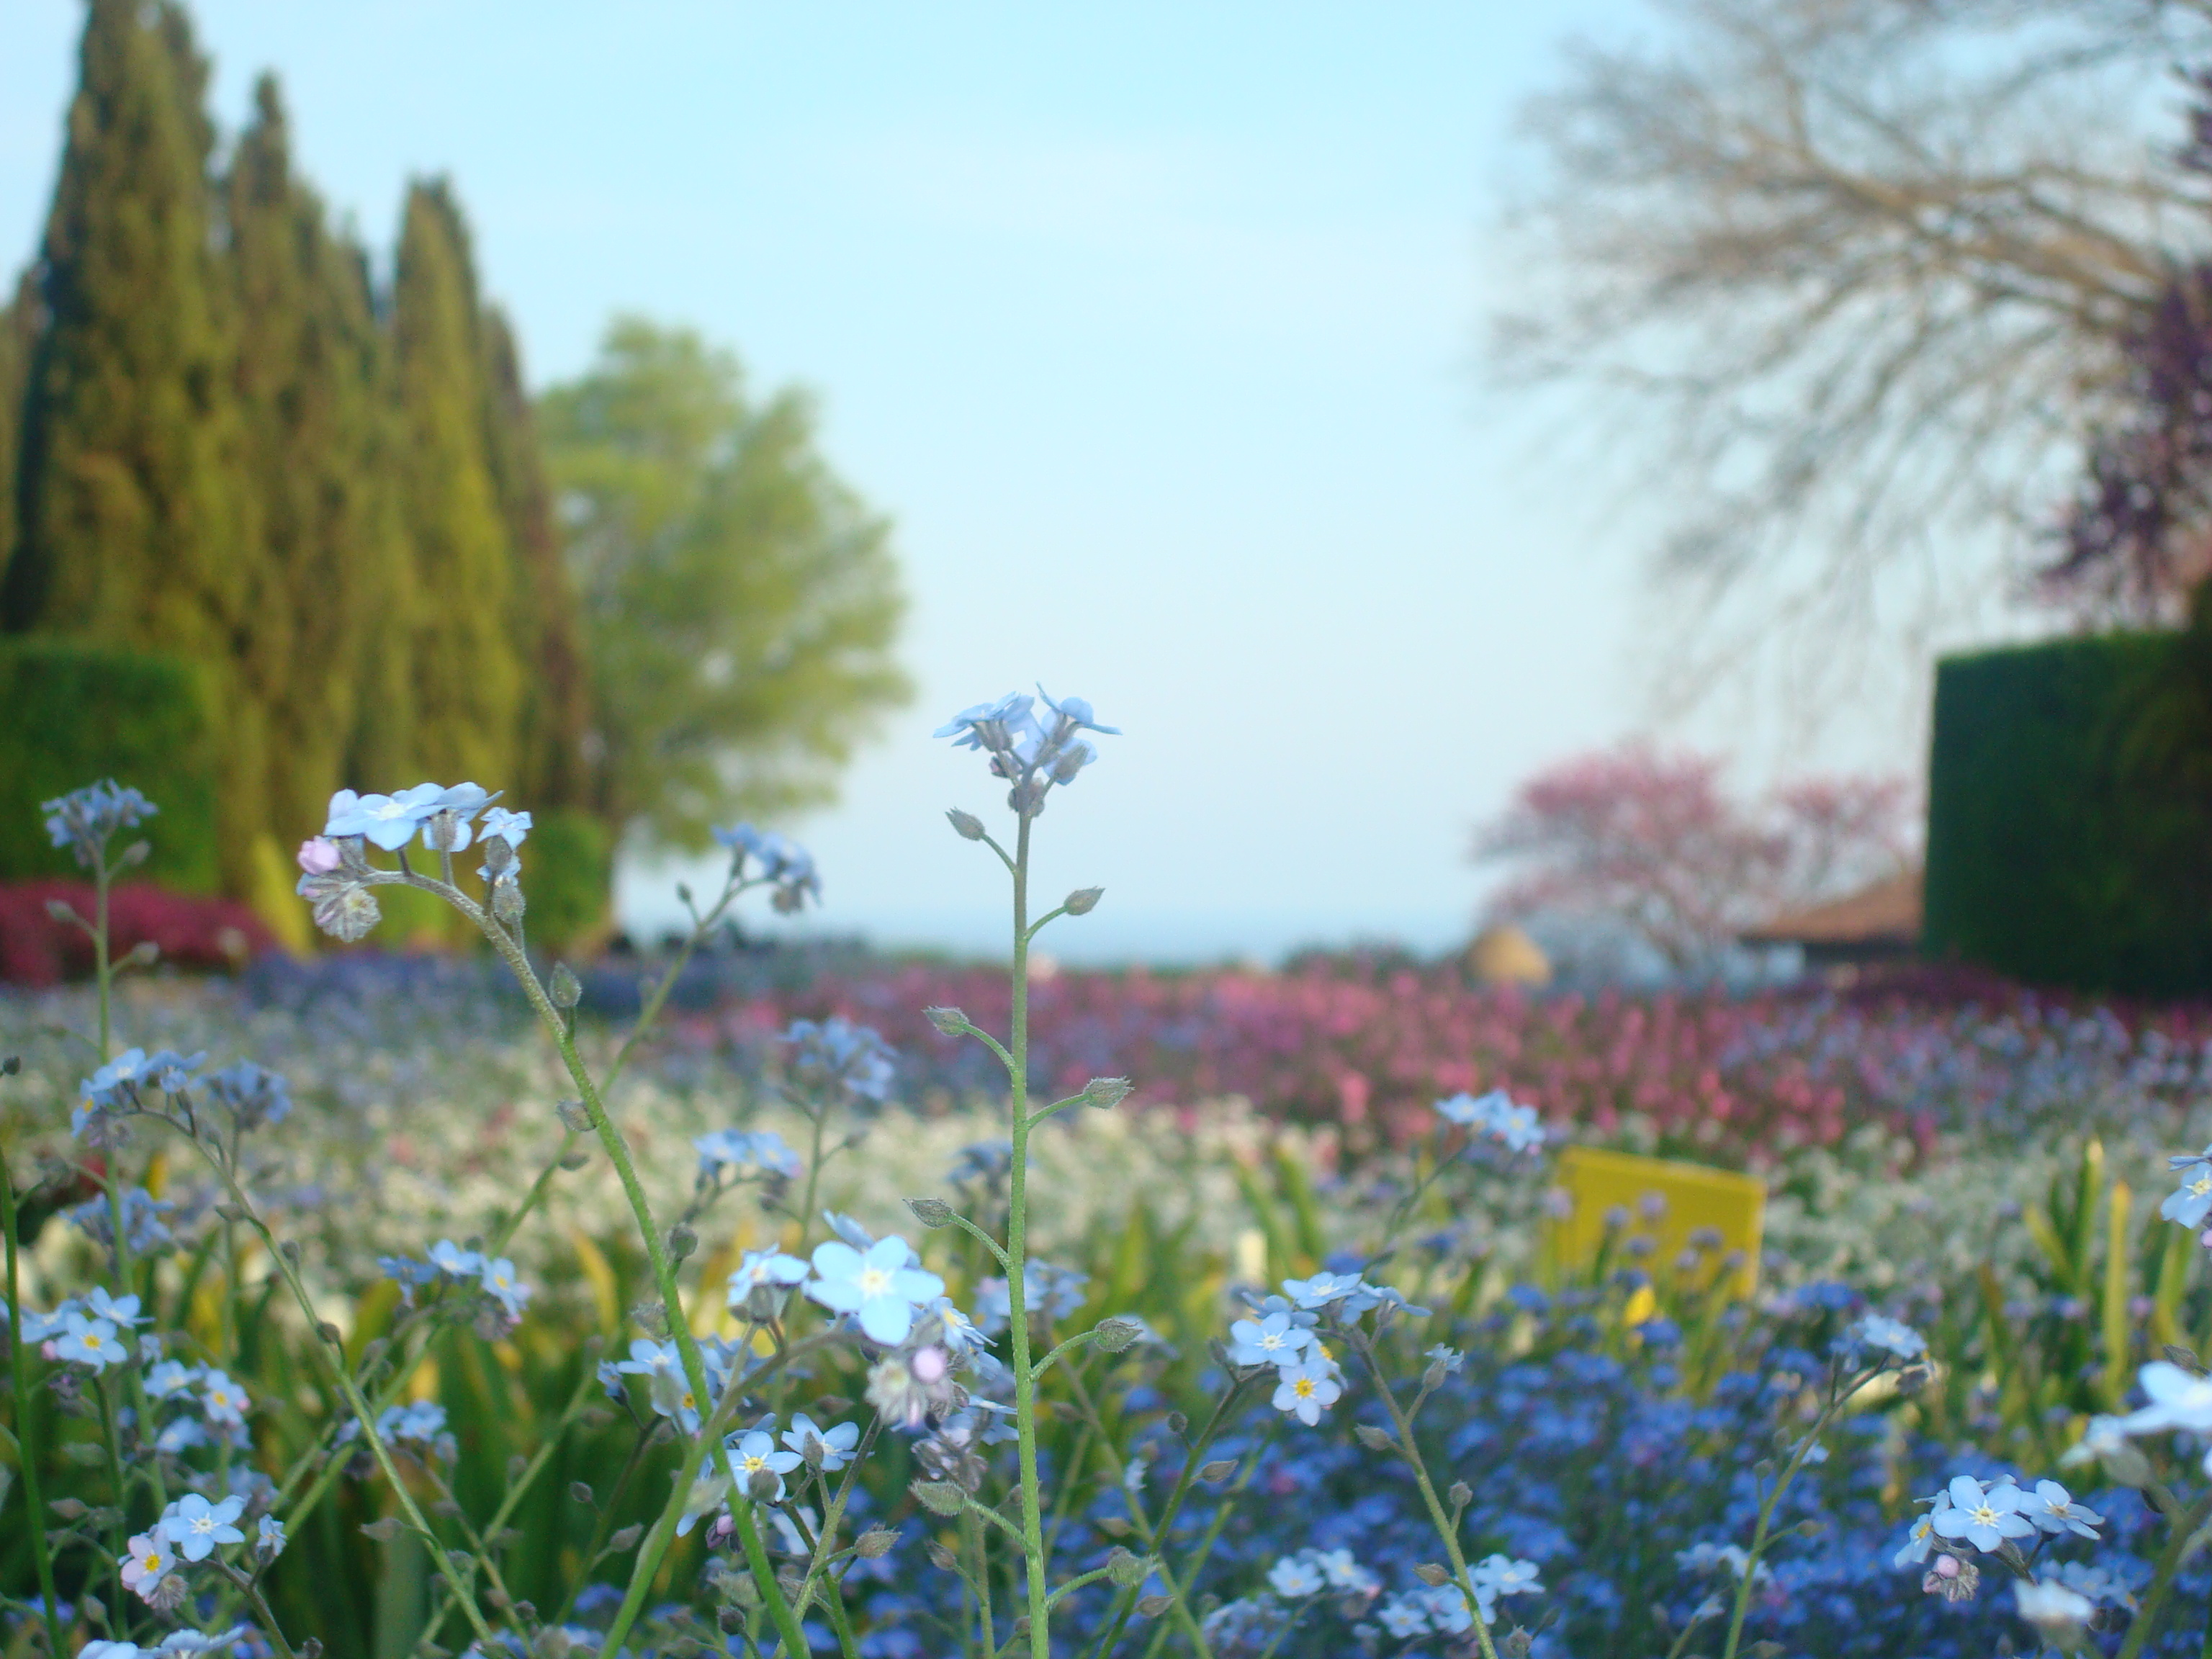 Little blue flower in a colorful garden, Garden, Pretty, Plants, Outdoors, HQ Photo